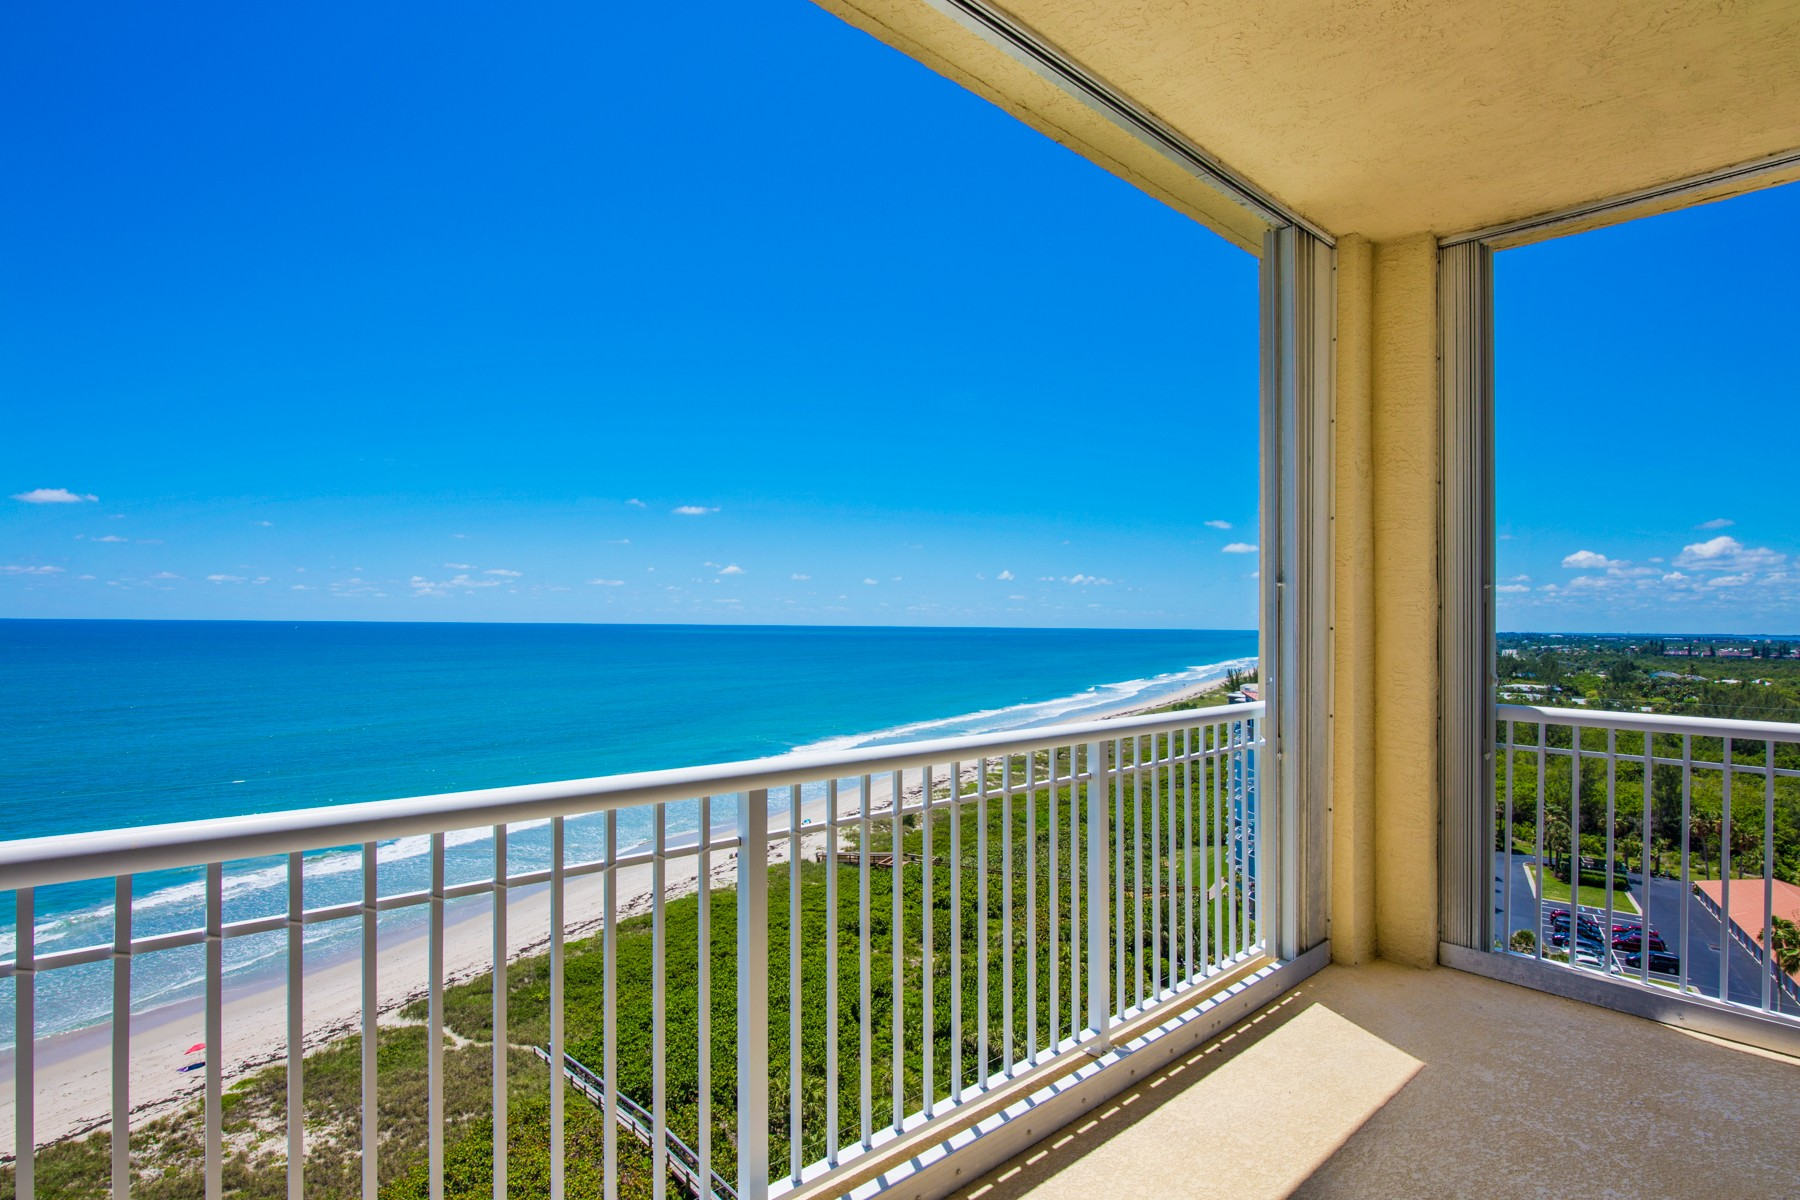 Condominiums for Sale at Oceanfront Penthouse 3920 N Hwy Highway A1A, #PH4, Hutchinson Island, Florida 34949 United States